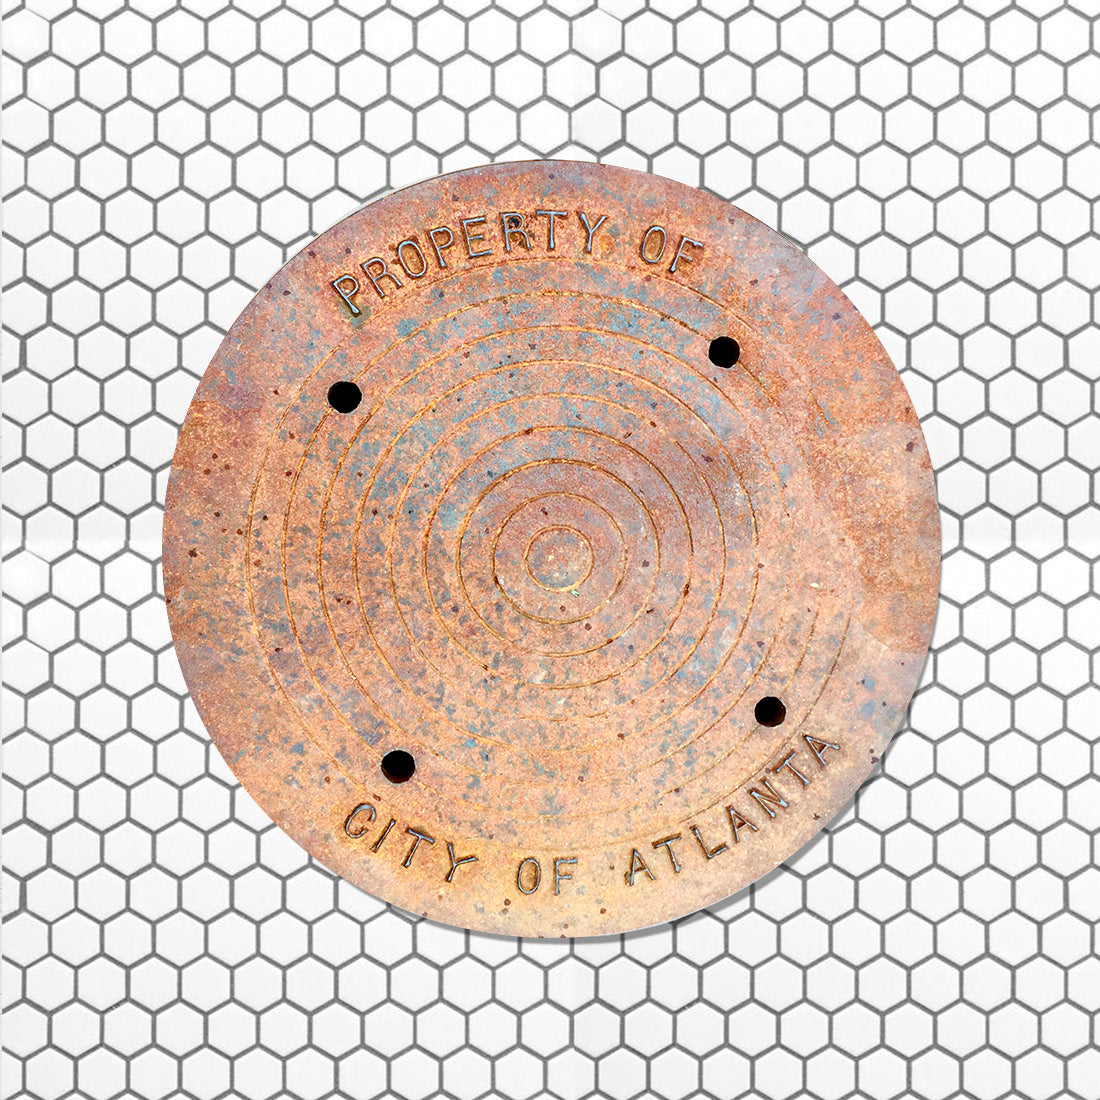 SOUTH SERIES - Sewer Cover Doormat, Trivet, Coaster - Atlanta, GA